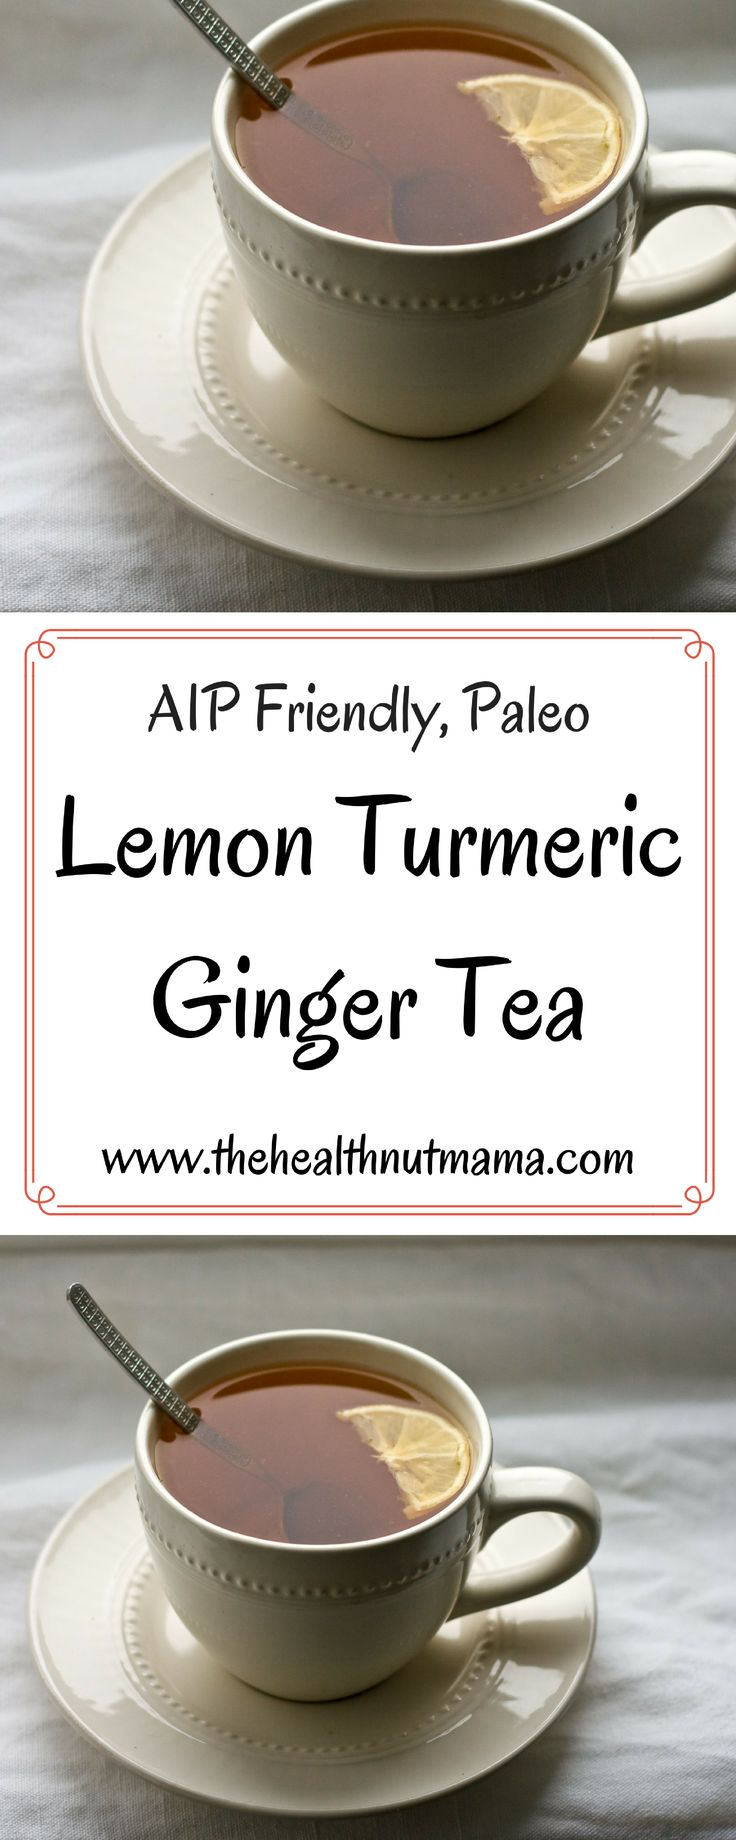 One of the most nutritious teas you can drink. Lemon Turmeric Ginger Tea! #aip #paleo #lemon #turmeric #ginger #tea #inflammation #autoimmune #disease #digestion #loseweight #cancer #antiimmflammatory #acv #applecidervinegar www.thehealthnutmama.com